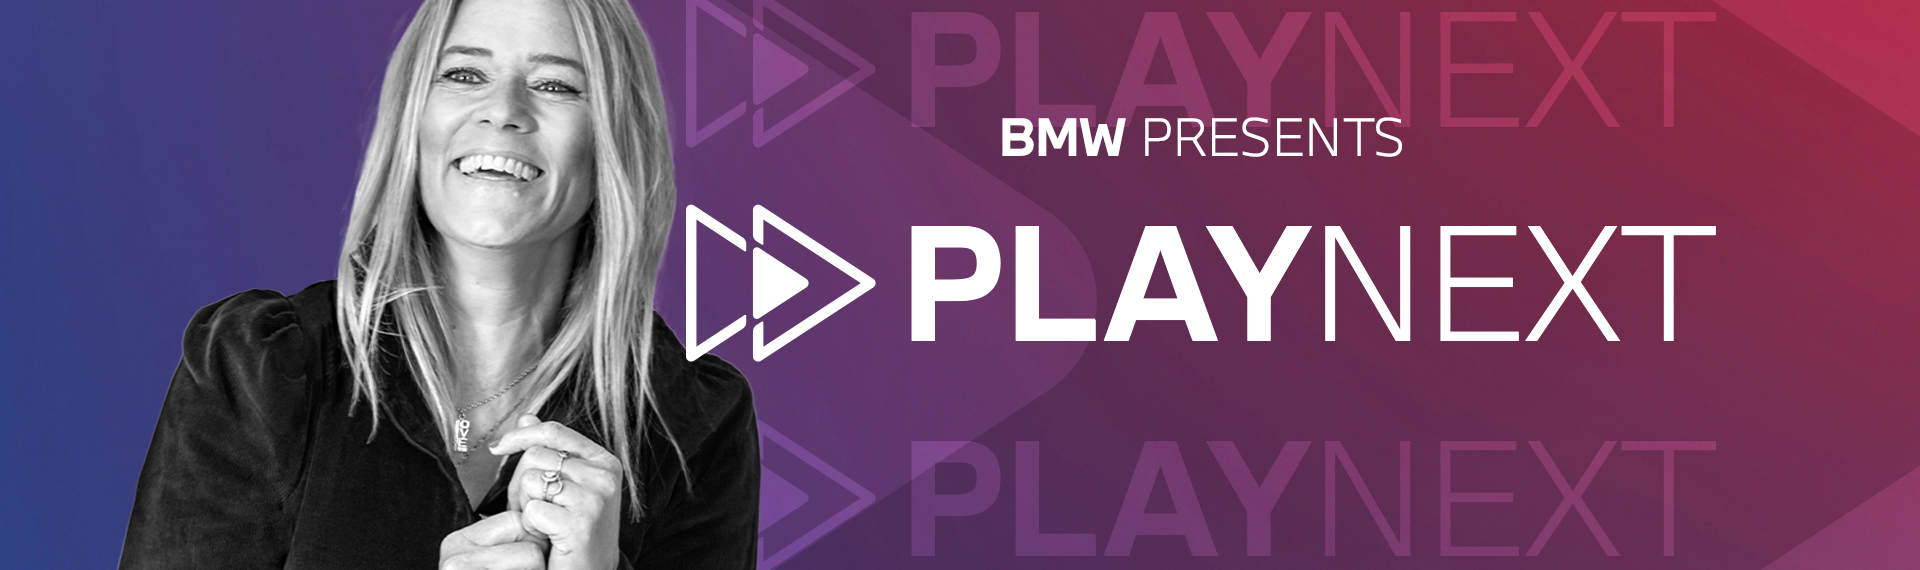 BMW presents Play Next with Edith Bowman